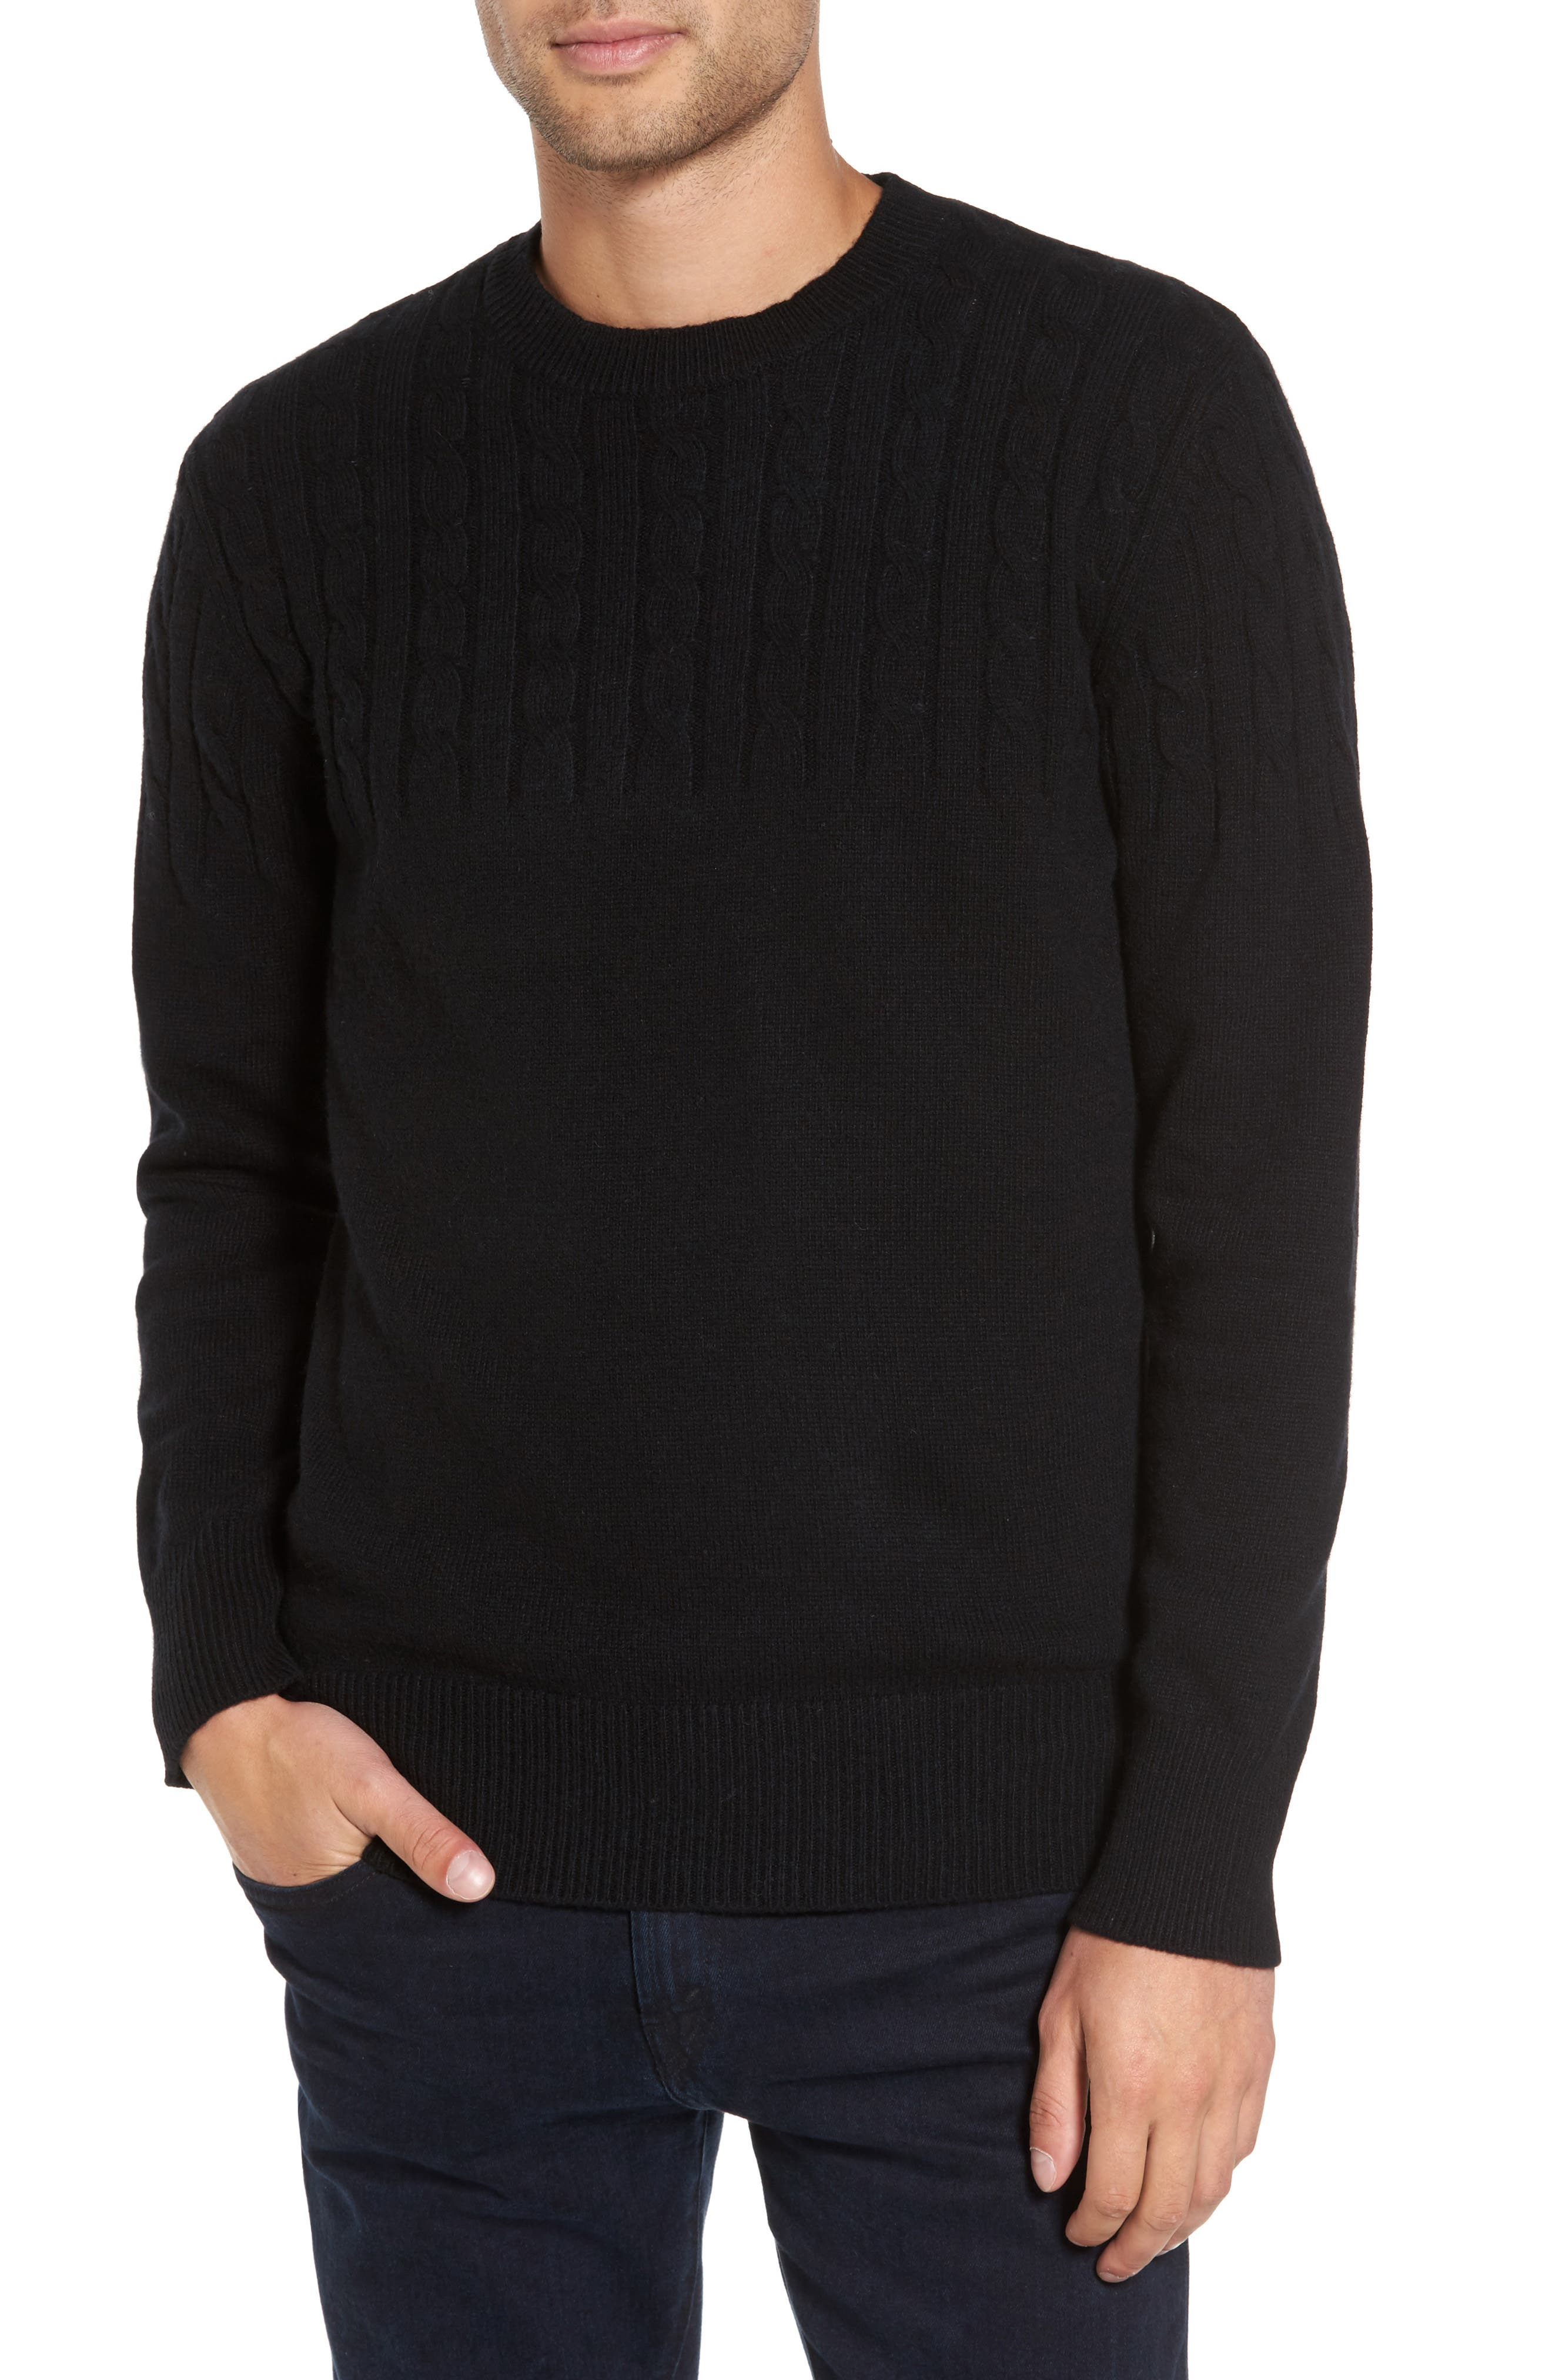 Wool Cable Knit Sweater,                             Main thumbnail 1, color,                             Black